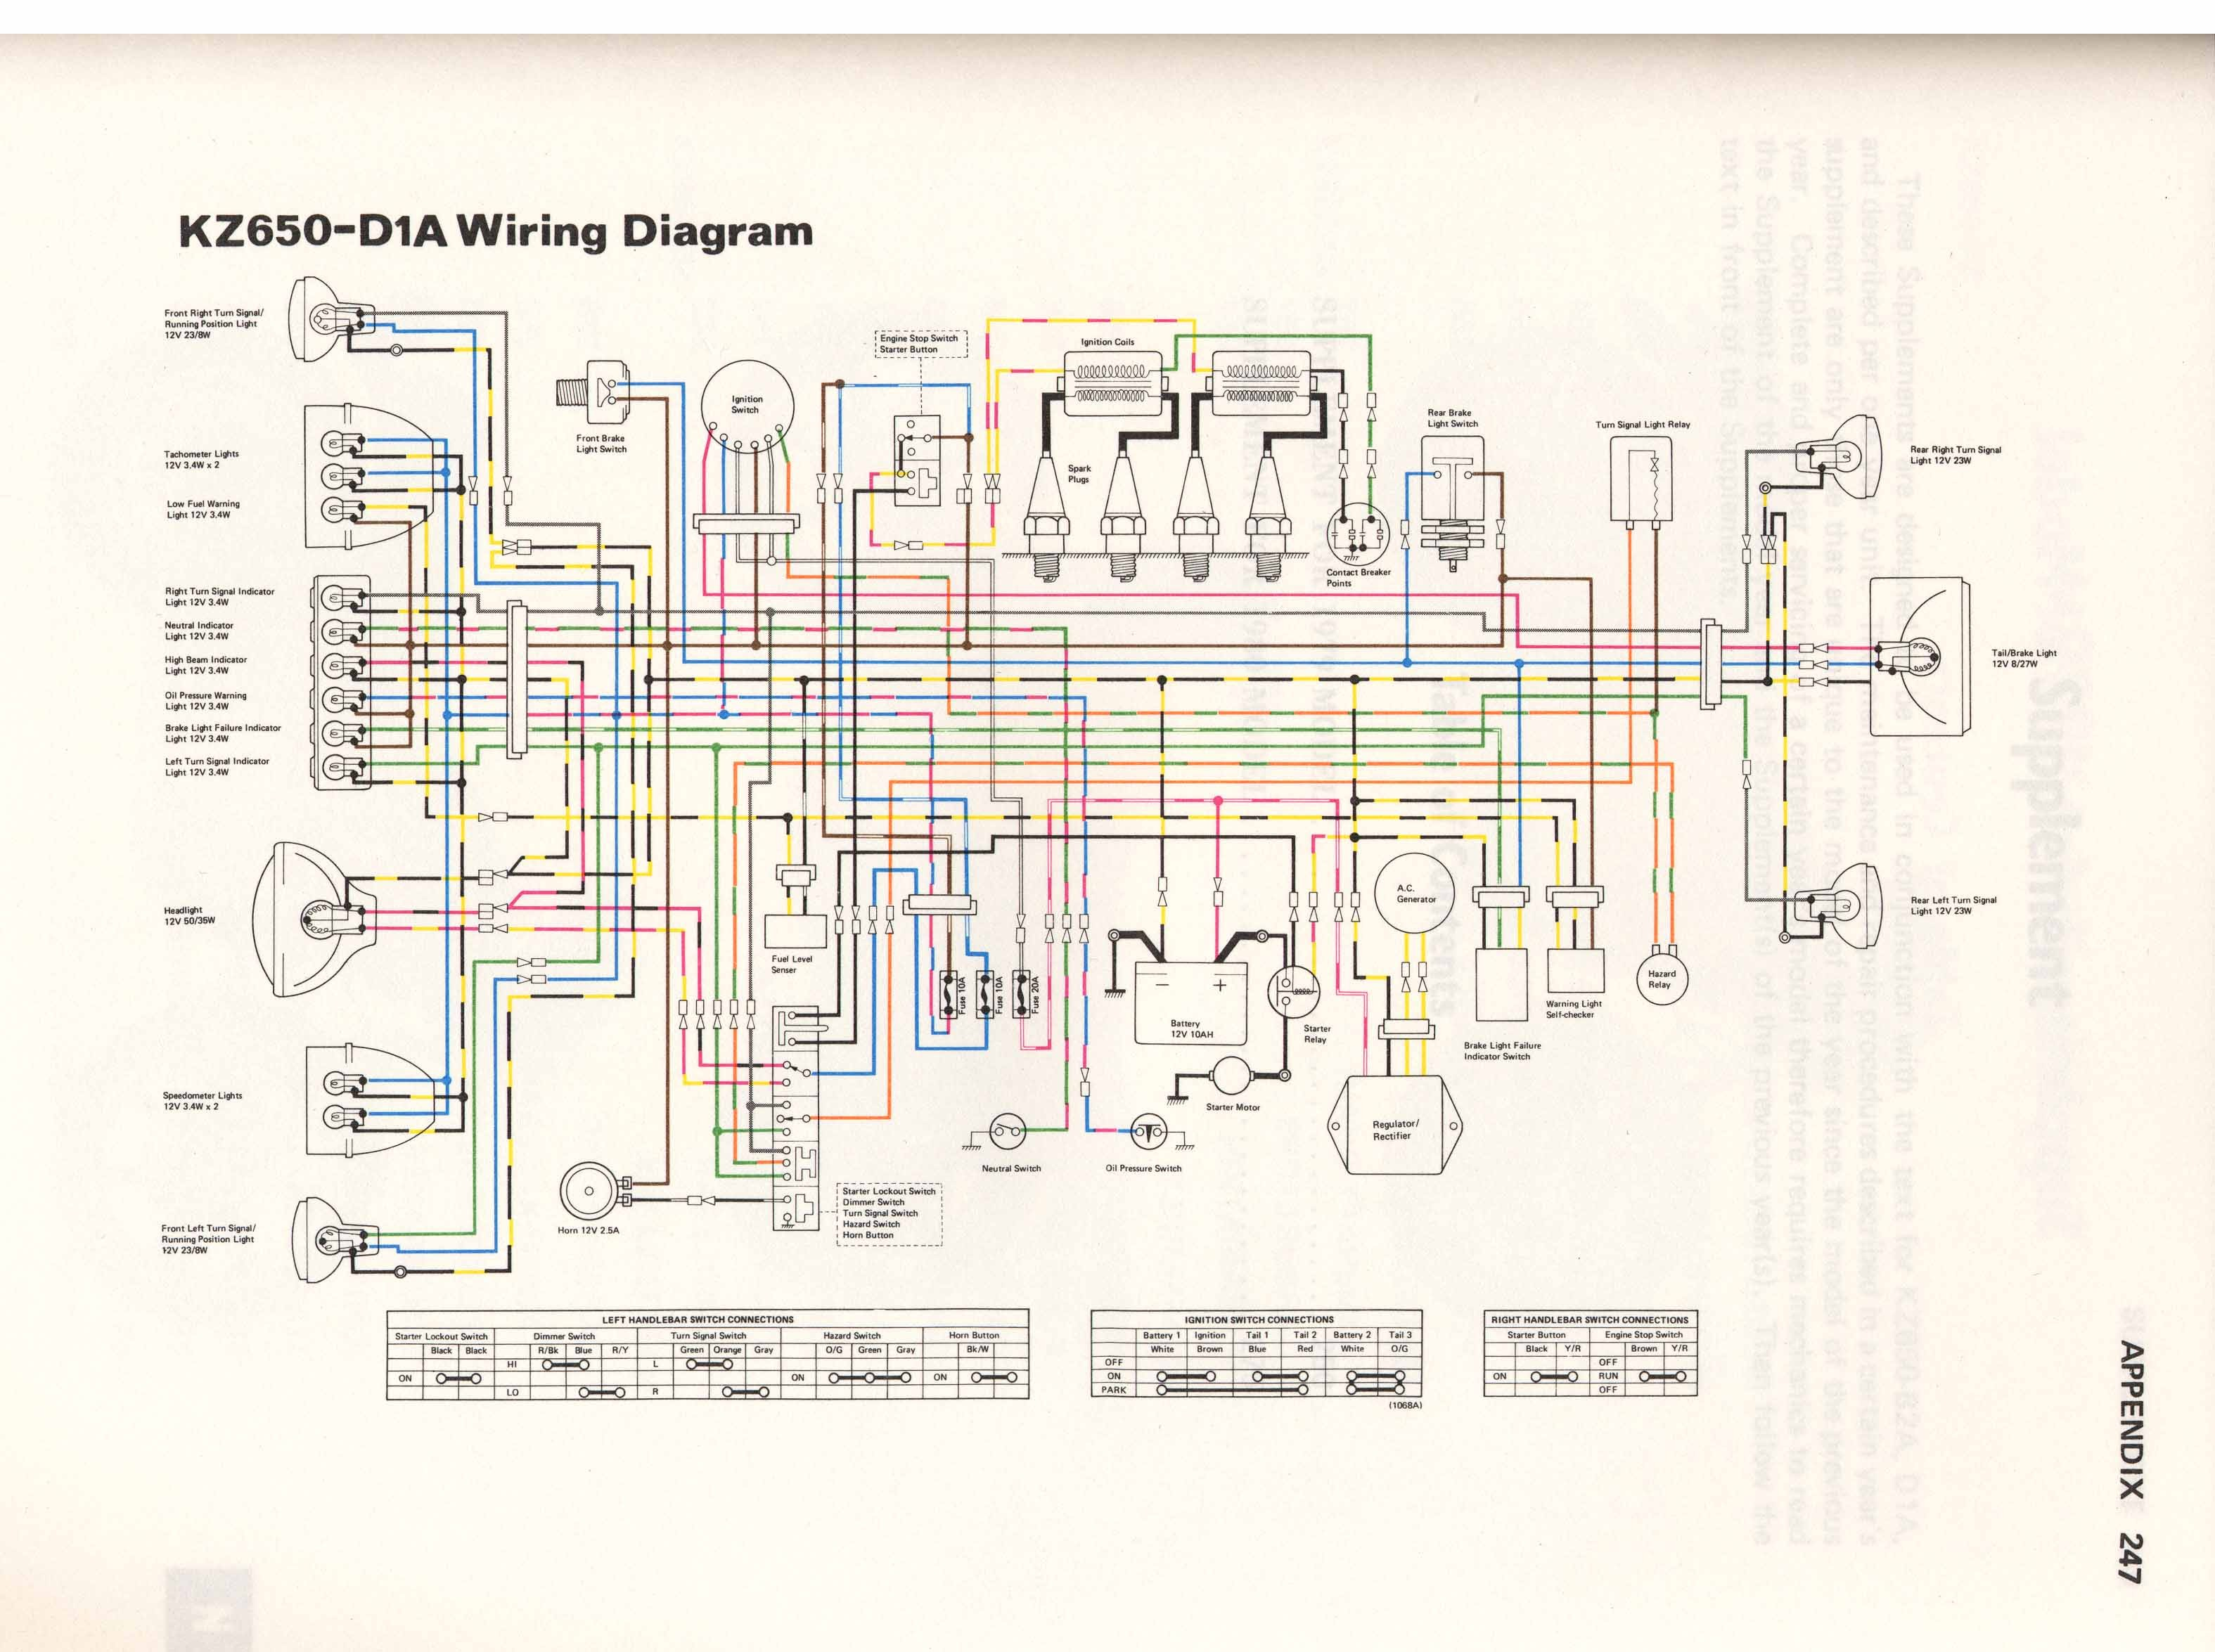 2000 Zx9r Wiring Diagram - Radio Wiring Harness Jeep Wrangler -  dumble.holden-commodore.jeanjaures37.fr | 2003 Kawasaki Zx9r Wiring Diagram |  | Wiring Diagram Resource